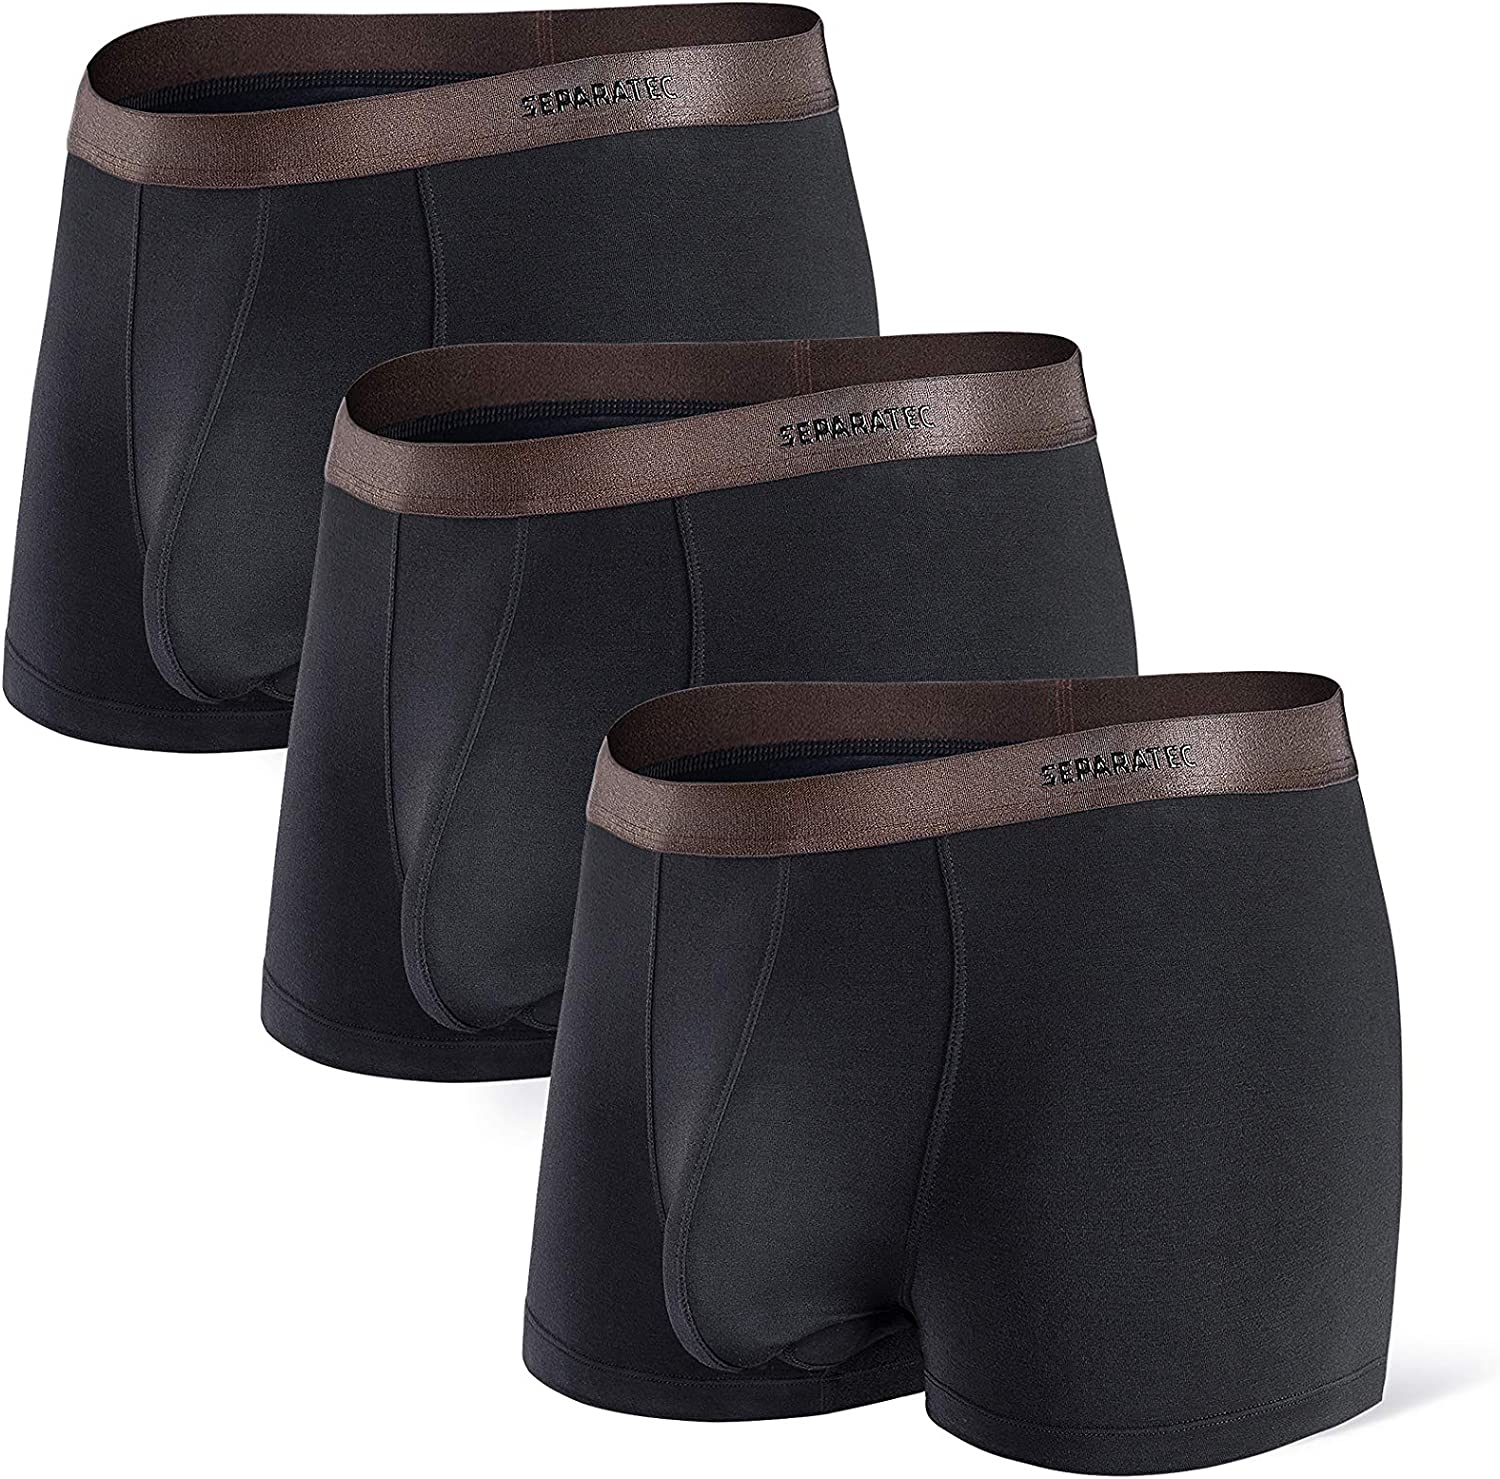 Separatec Bamboo Rayon Briefs 3 Pack Soft Breathable Dual Pouch Mens Underwear